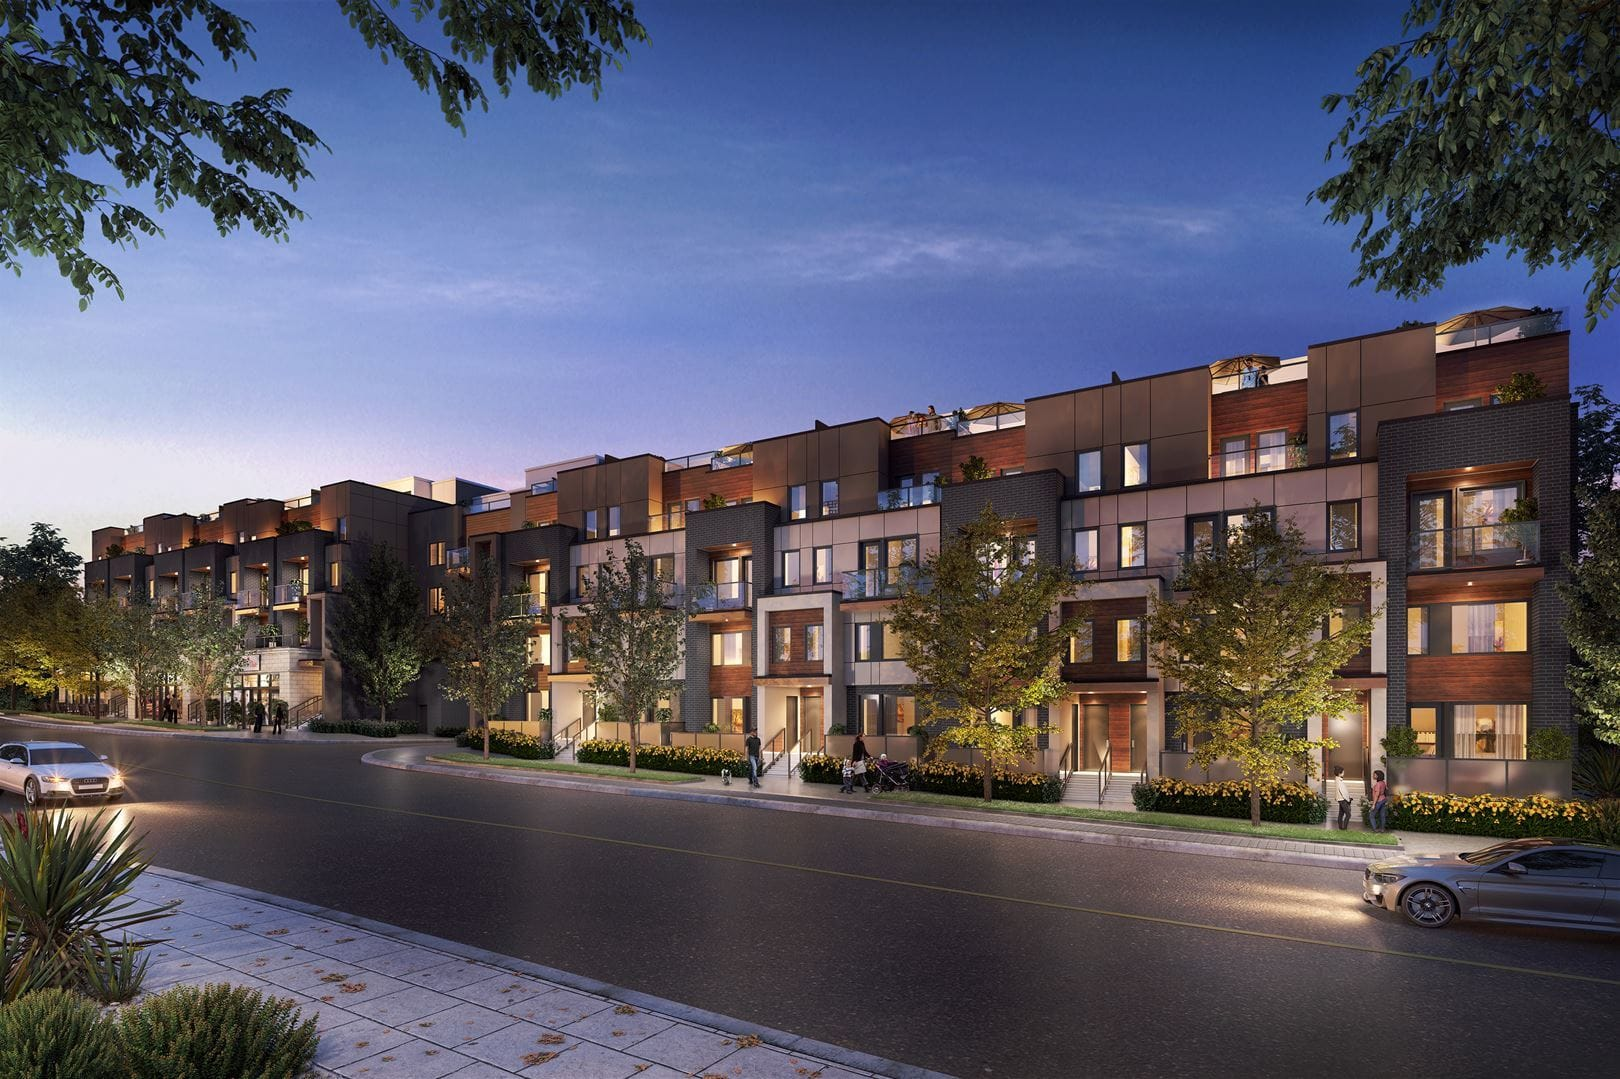 Streetscape evening rendering of Amsterdam Urban Townhomes in Toronto.